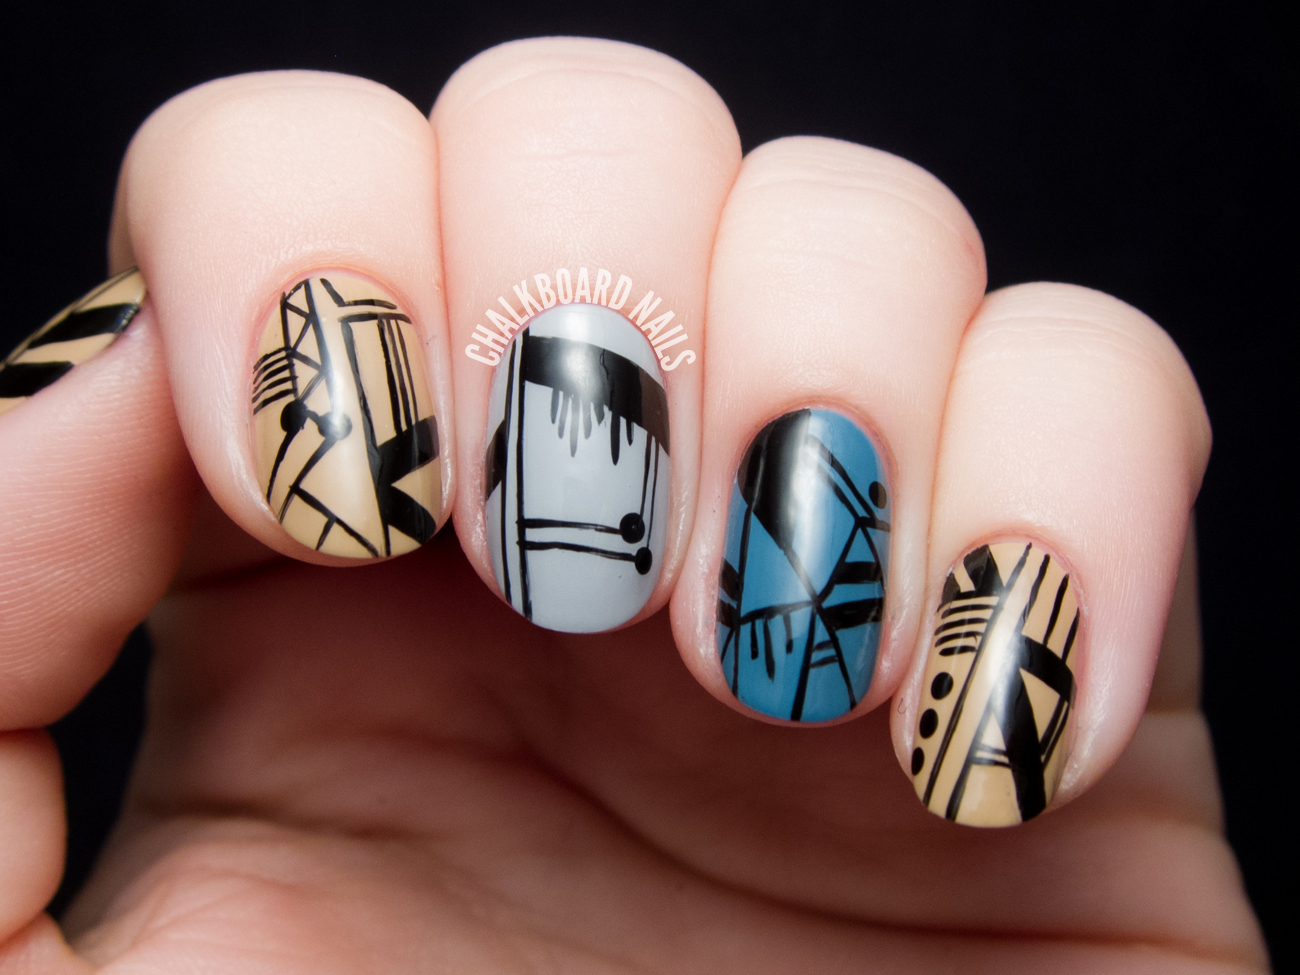 Spifster Inspired Fine Linework Nail Art by @chalkboardnails